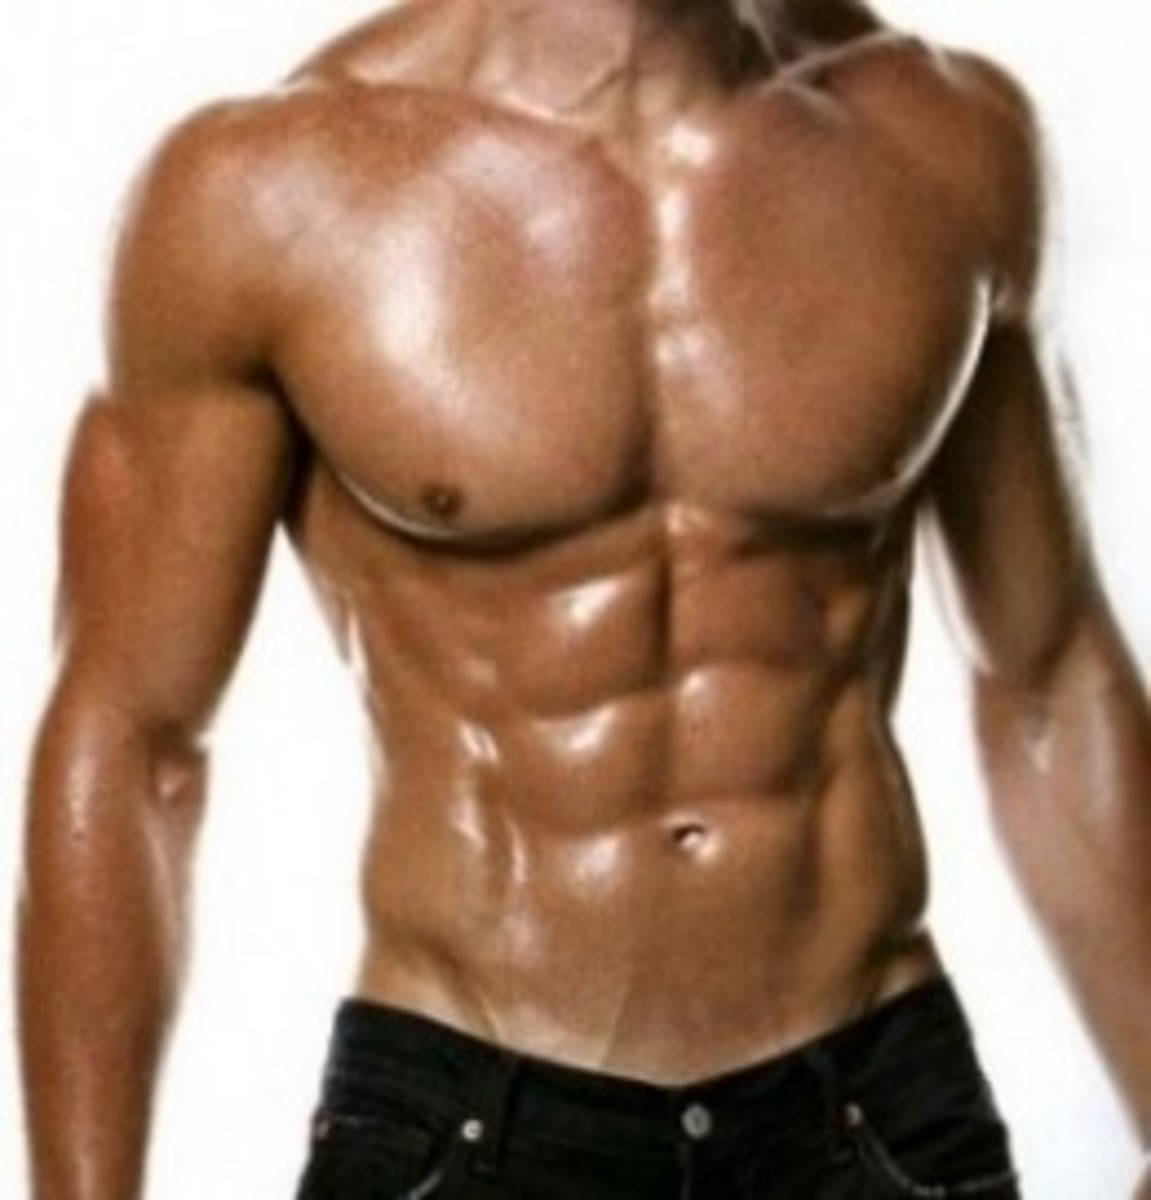 How to do a proper Ab workout routine? Mistakes that ...